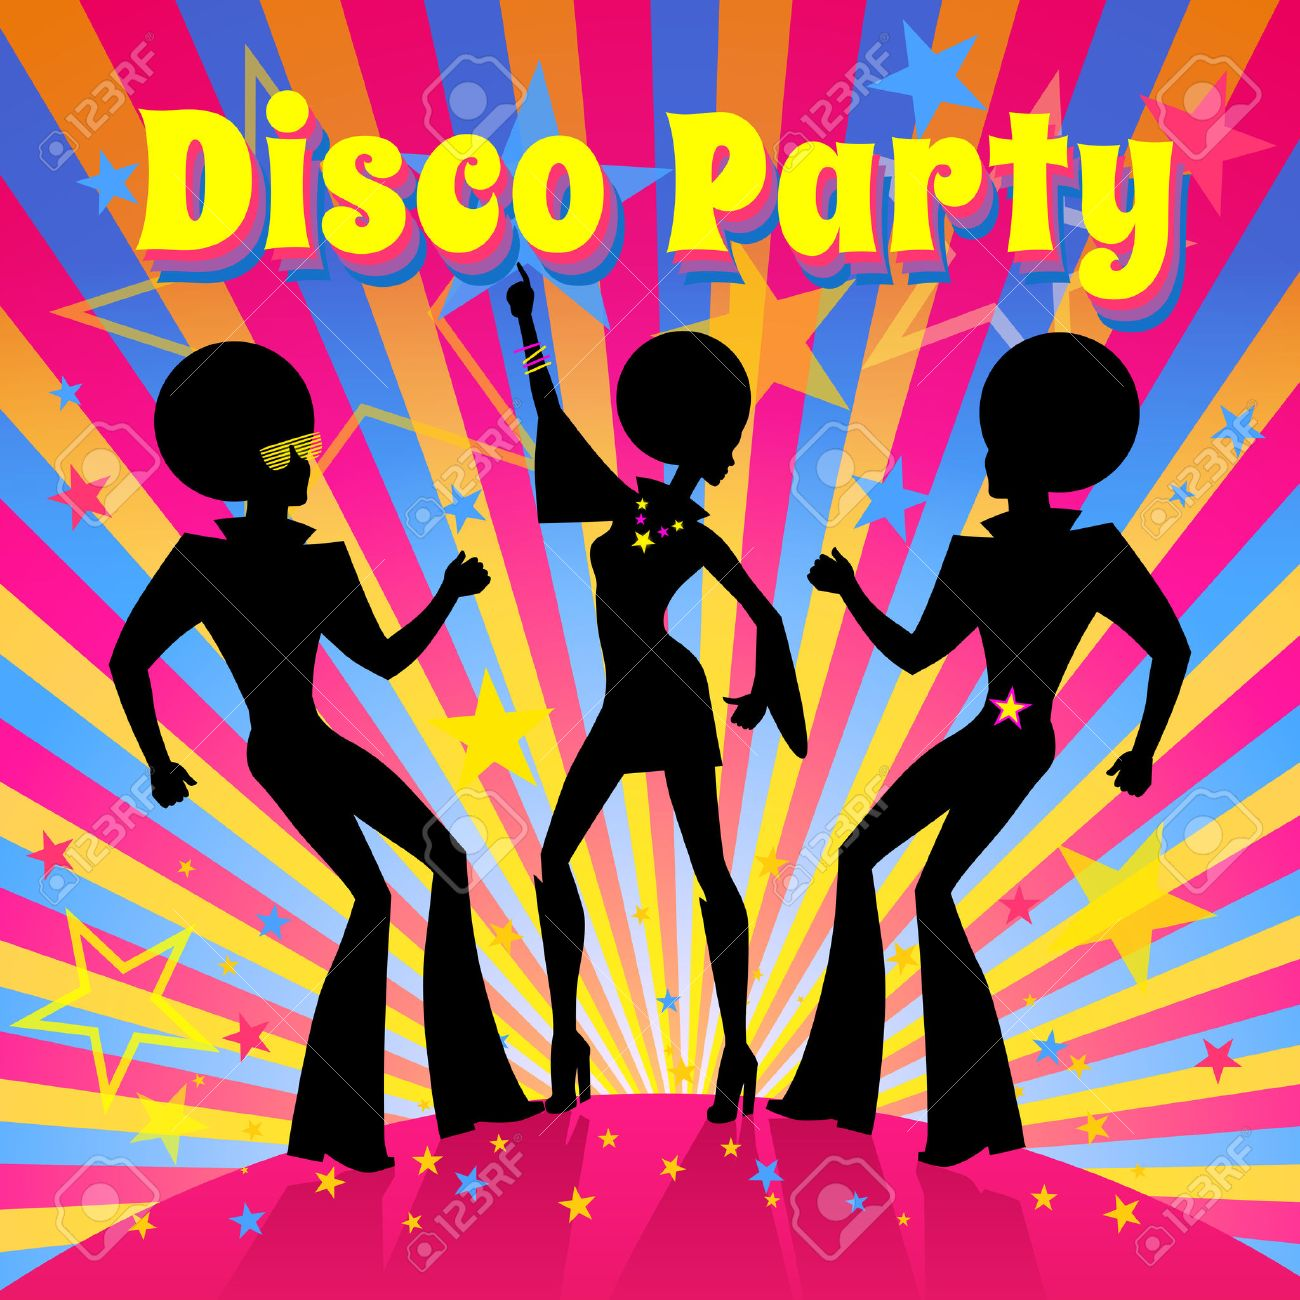 Disco Party Invitation Template With Silhouette Of A Dancing - 90s party invitation template